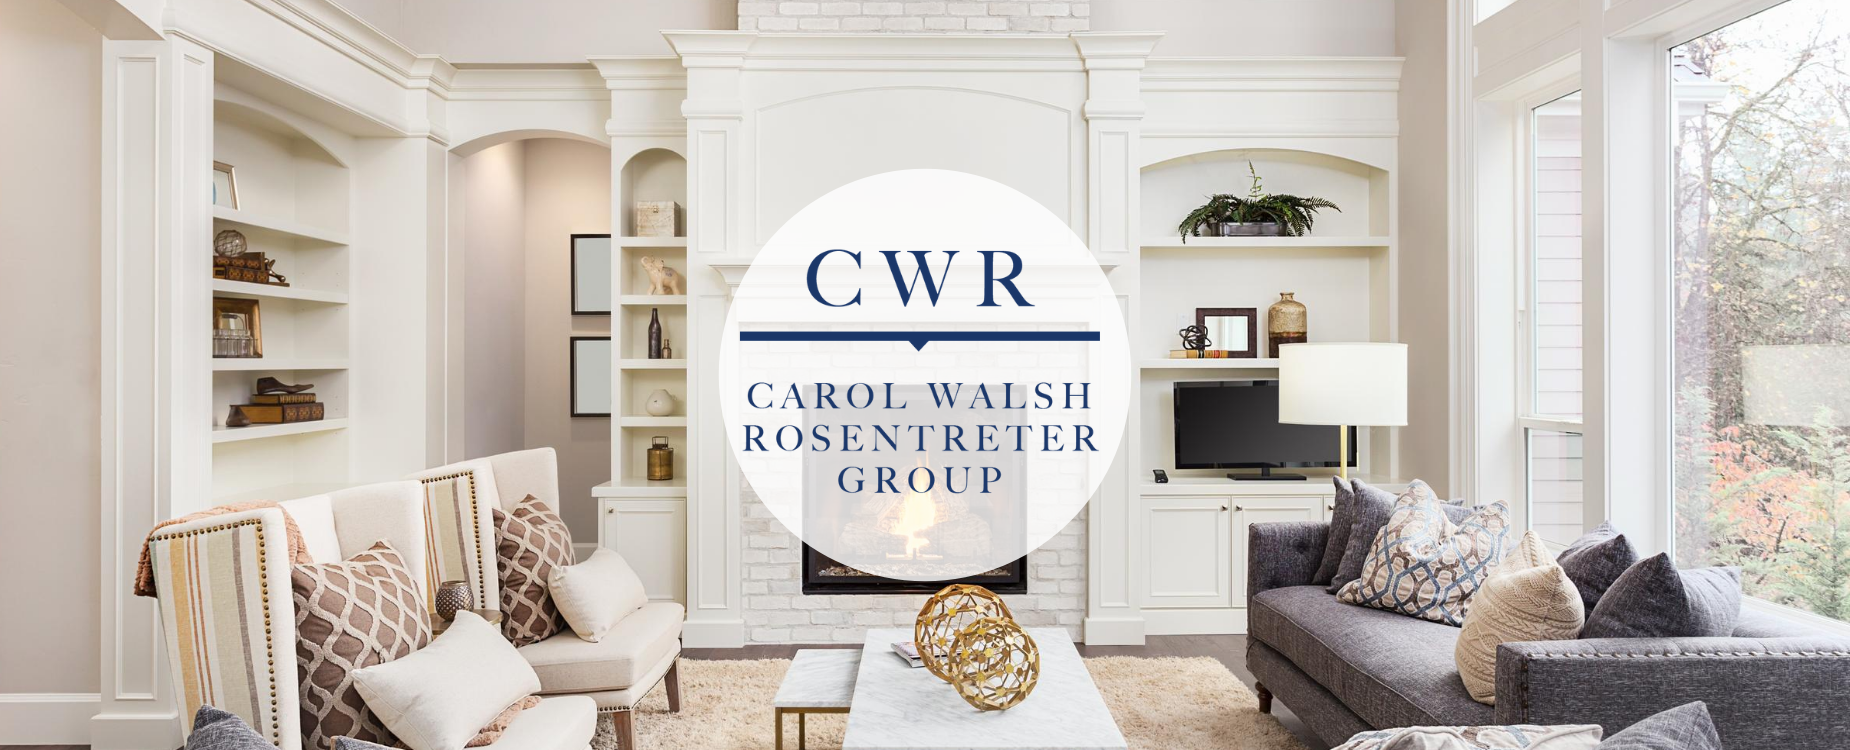 CWR Group 3